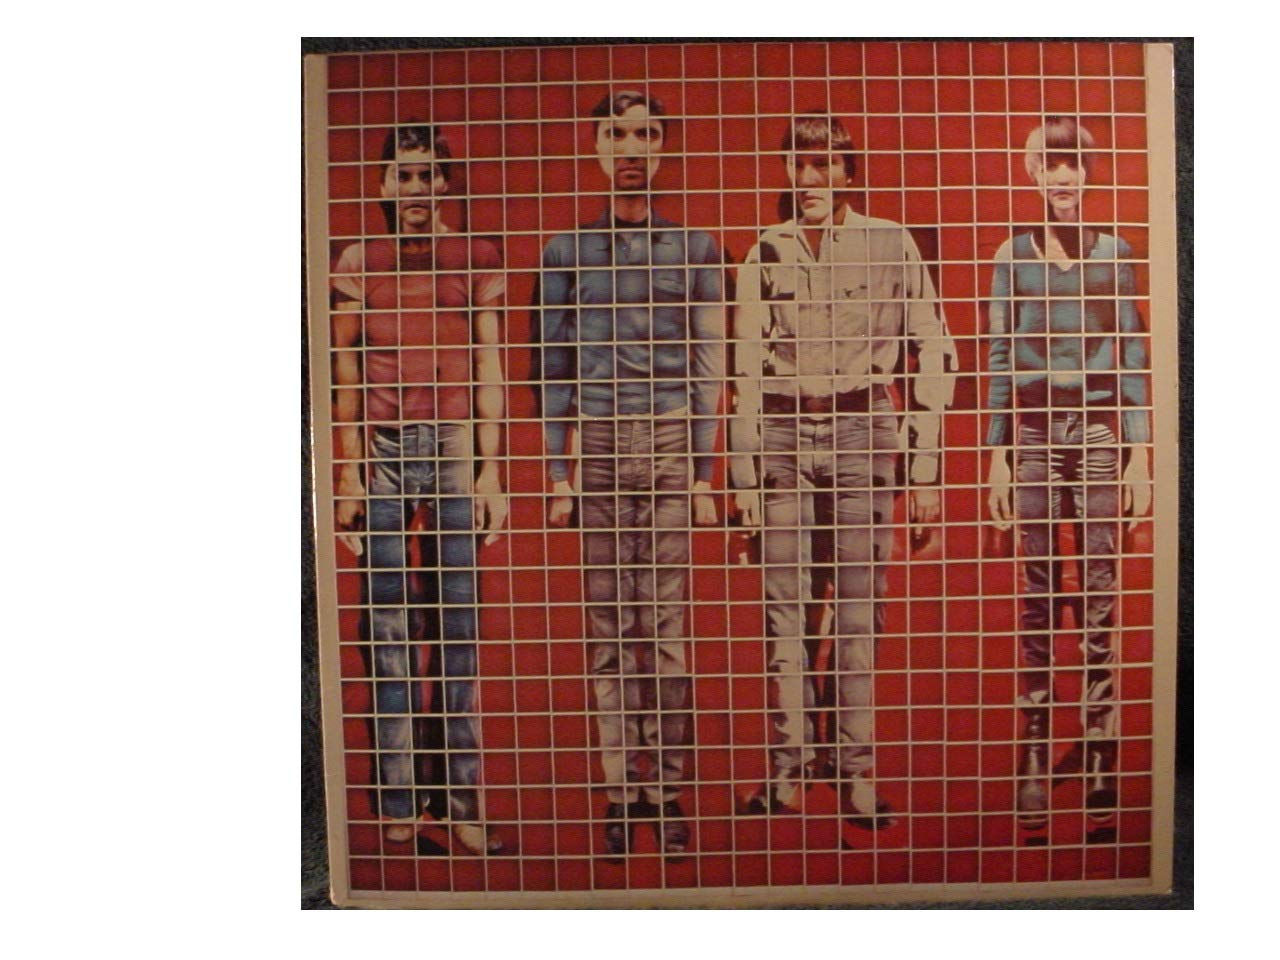 Talking Heads MORE SONGS ABOUT BUILDINGS AND FOOD - Sire Records 1978 - USED Vinyl LP Record - 1978 Pressing MASTERDISK - Take Me To The River - The Big Country - Stay Hungry - The Good Thing